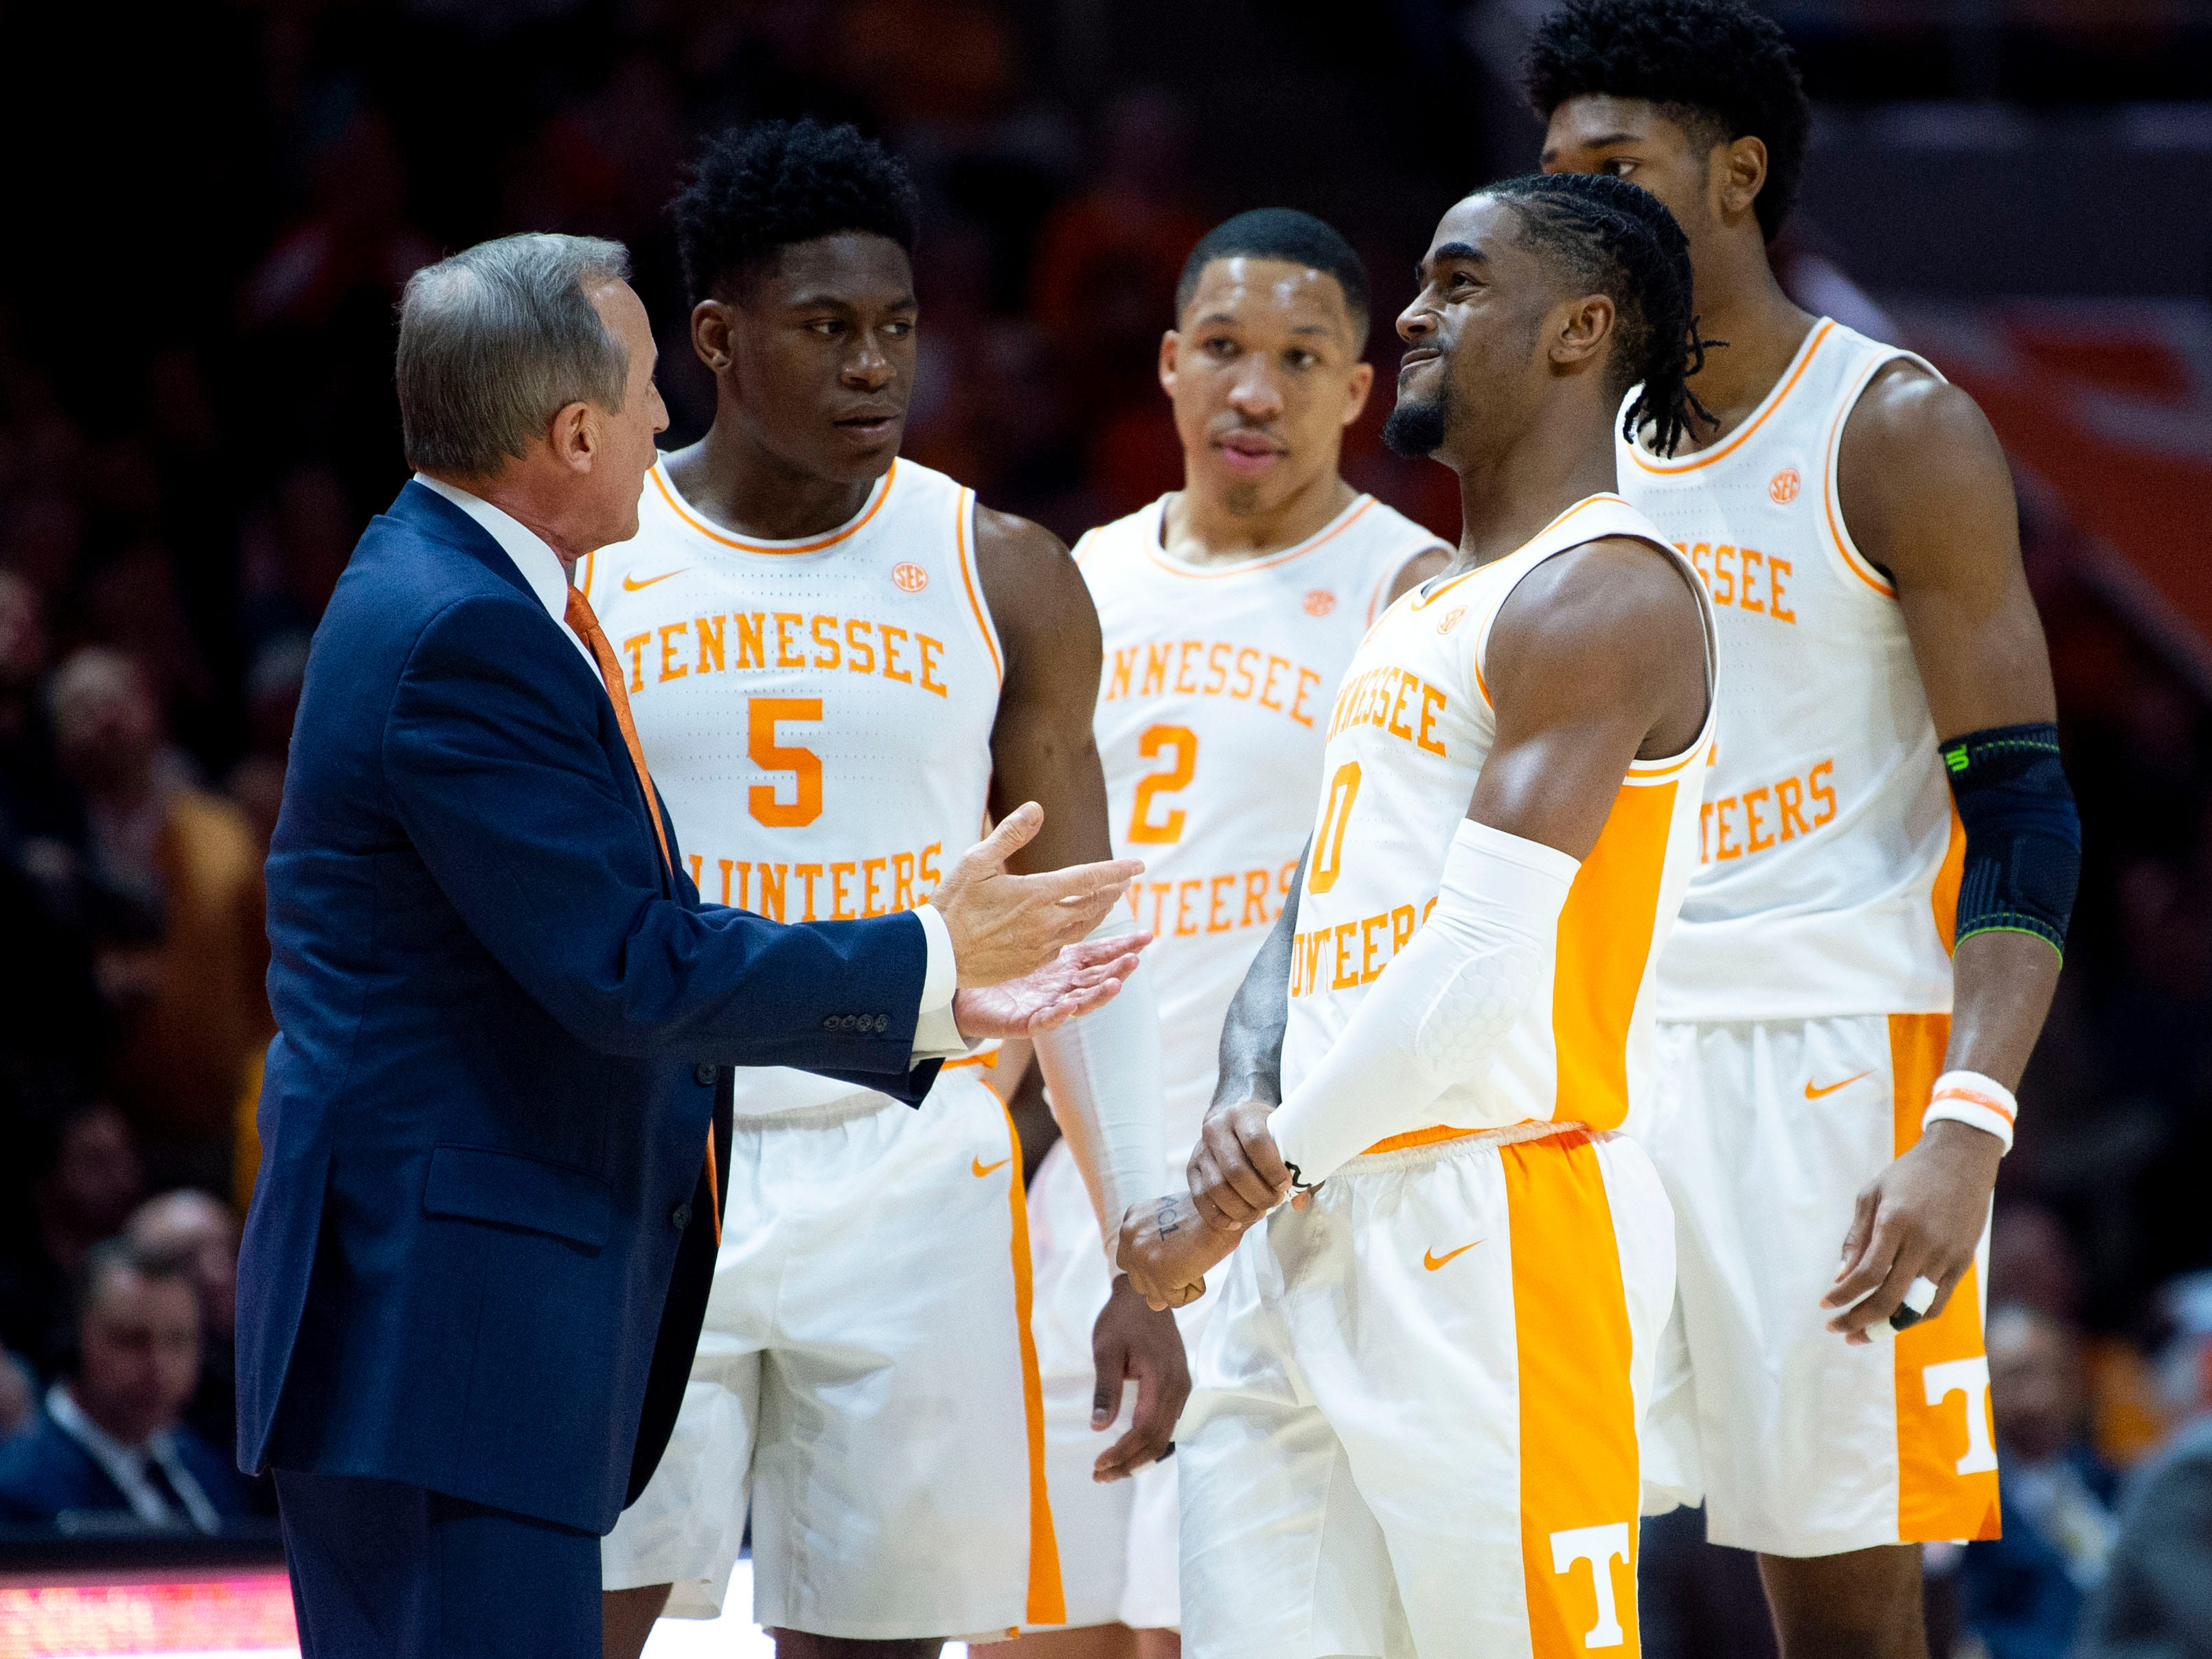 Tennessee head coach Rick Barnes talks with his players during a break in the game against South Carolina on Wednesday, February 13, 2019.